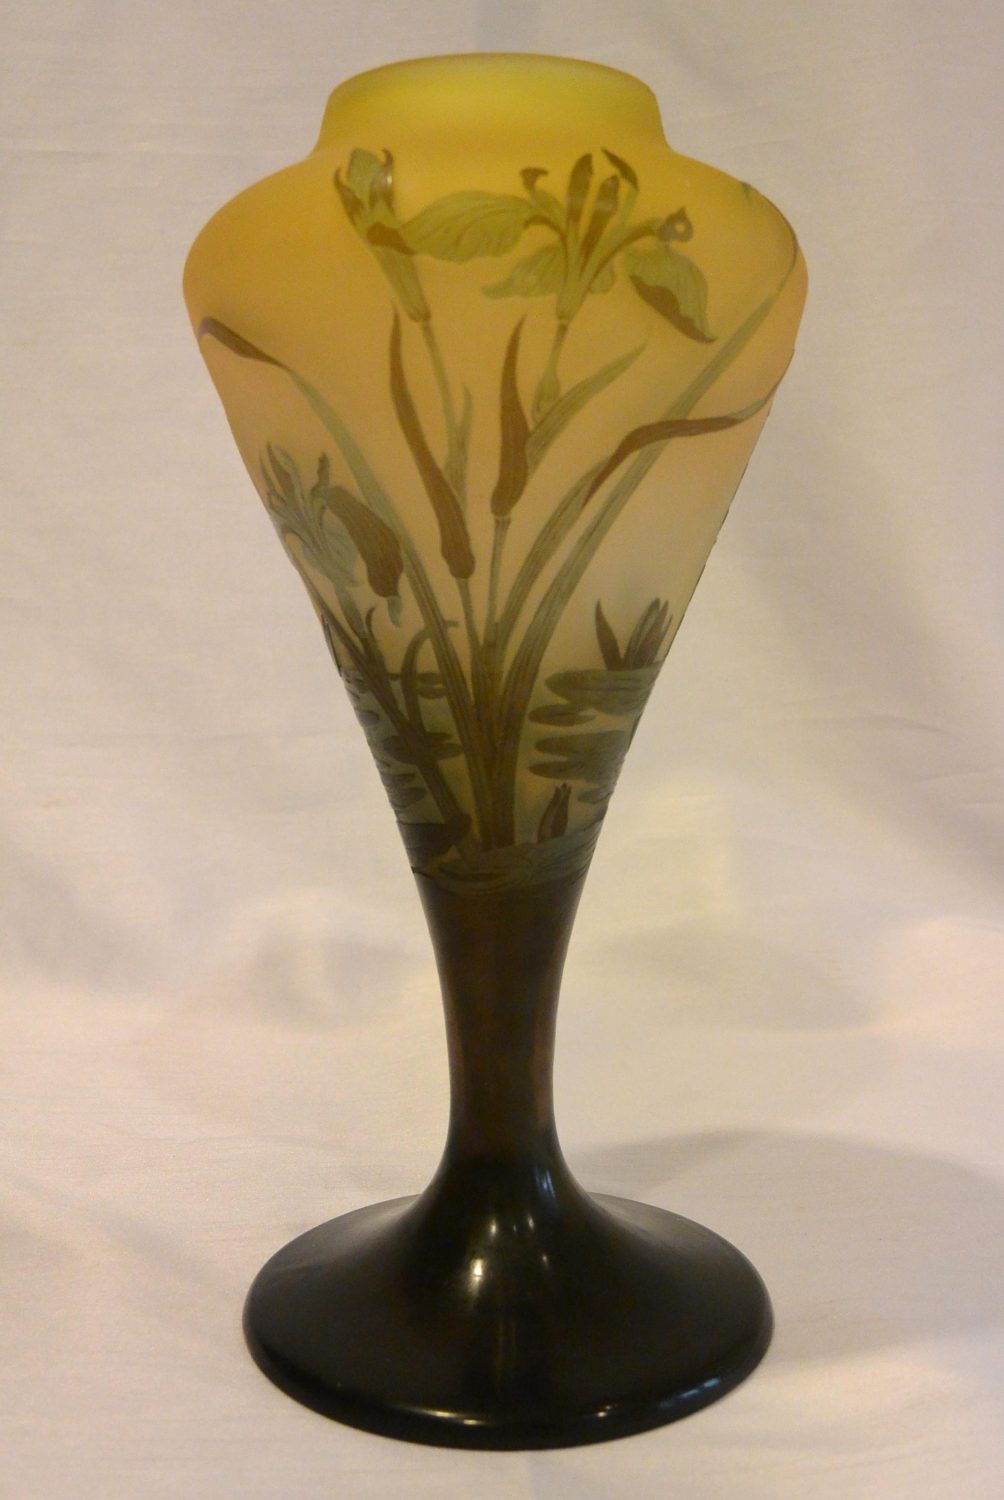 Emile Gallé – Vase with water plants decoration